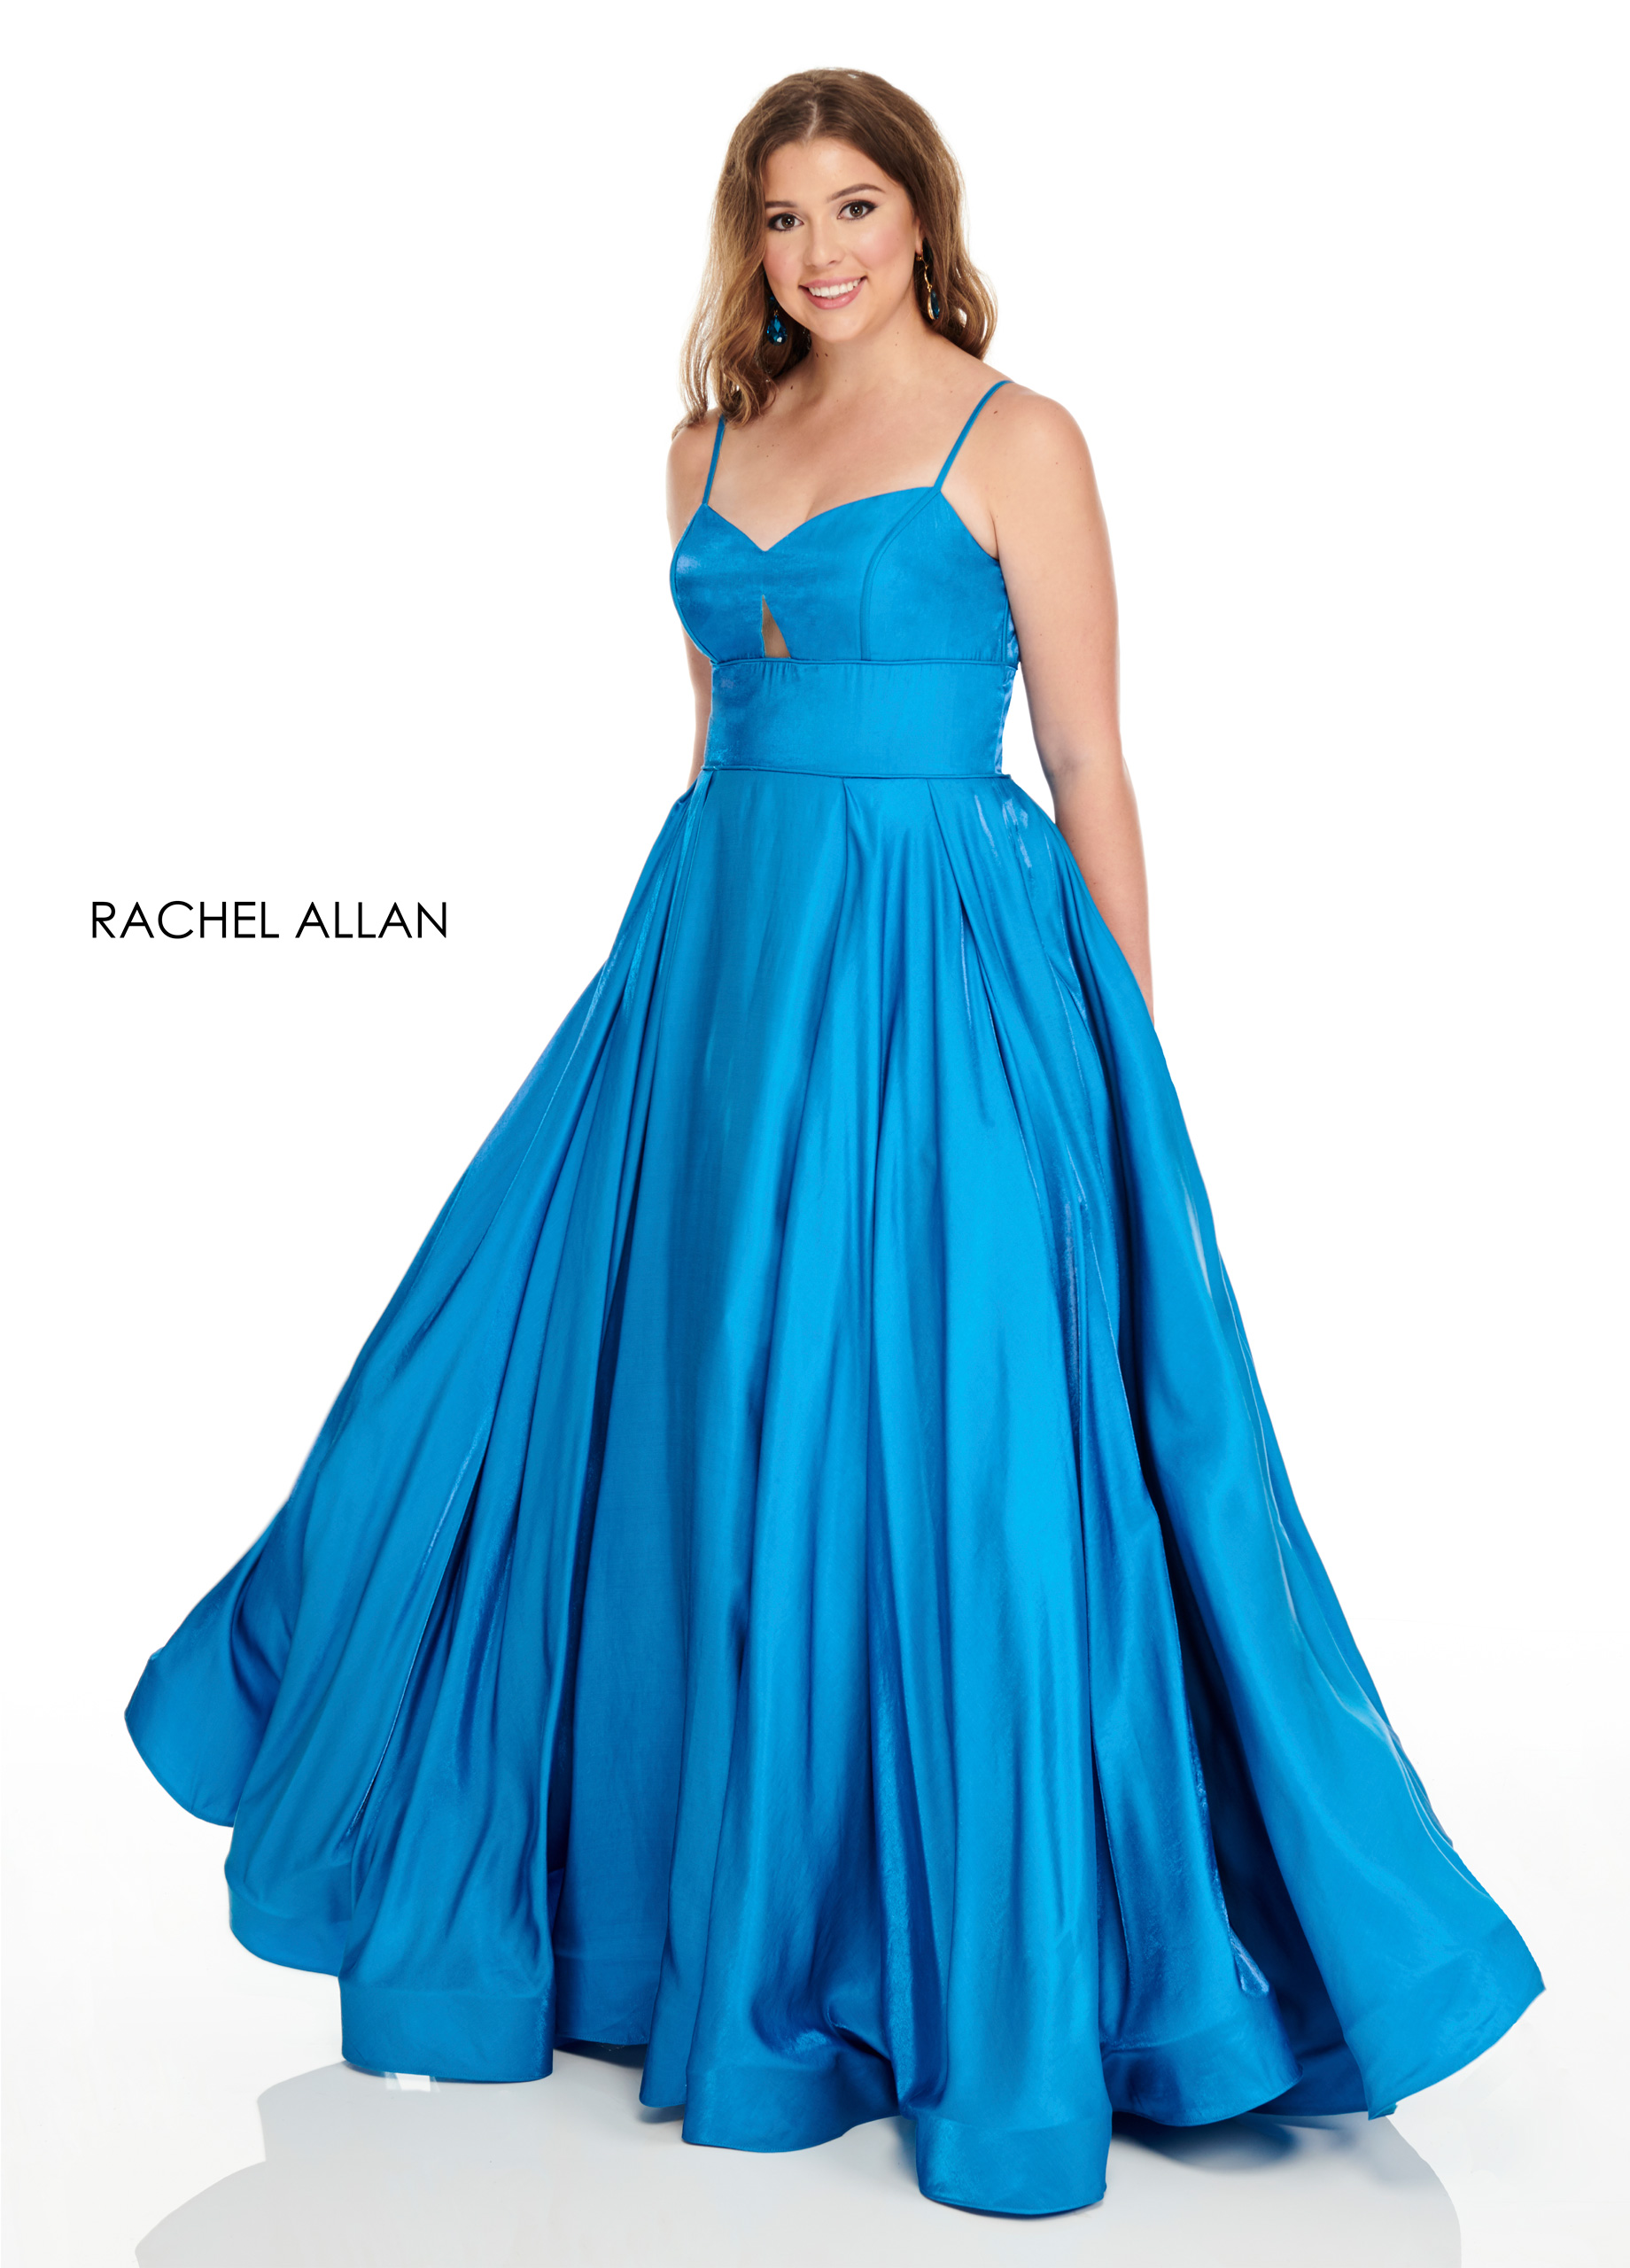 Strappy Ball Gowns Plus Size Dresses in Aqua Color